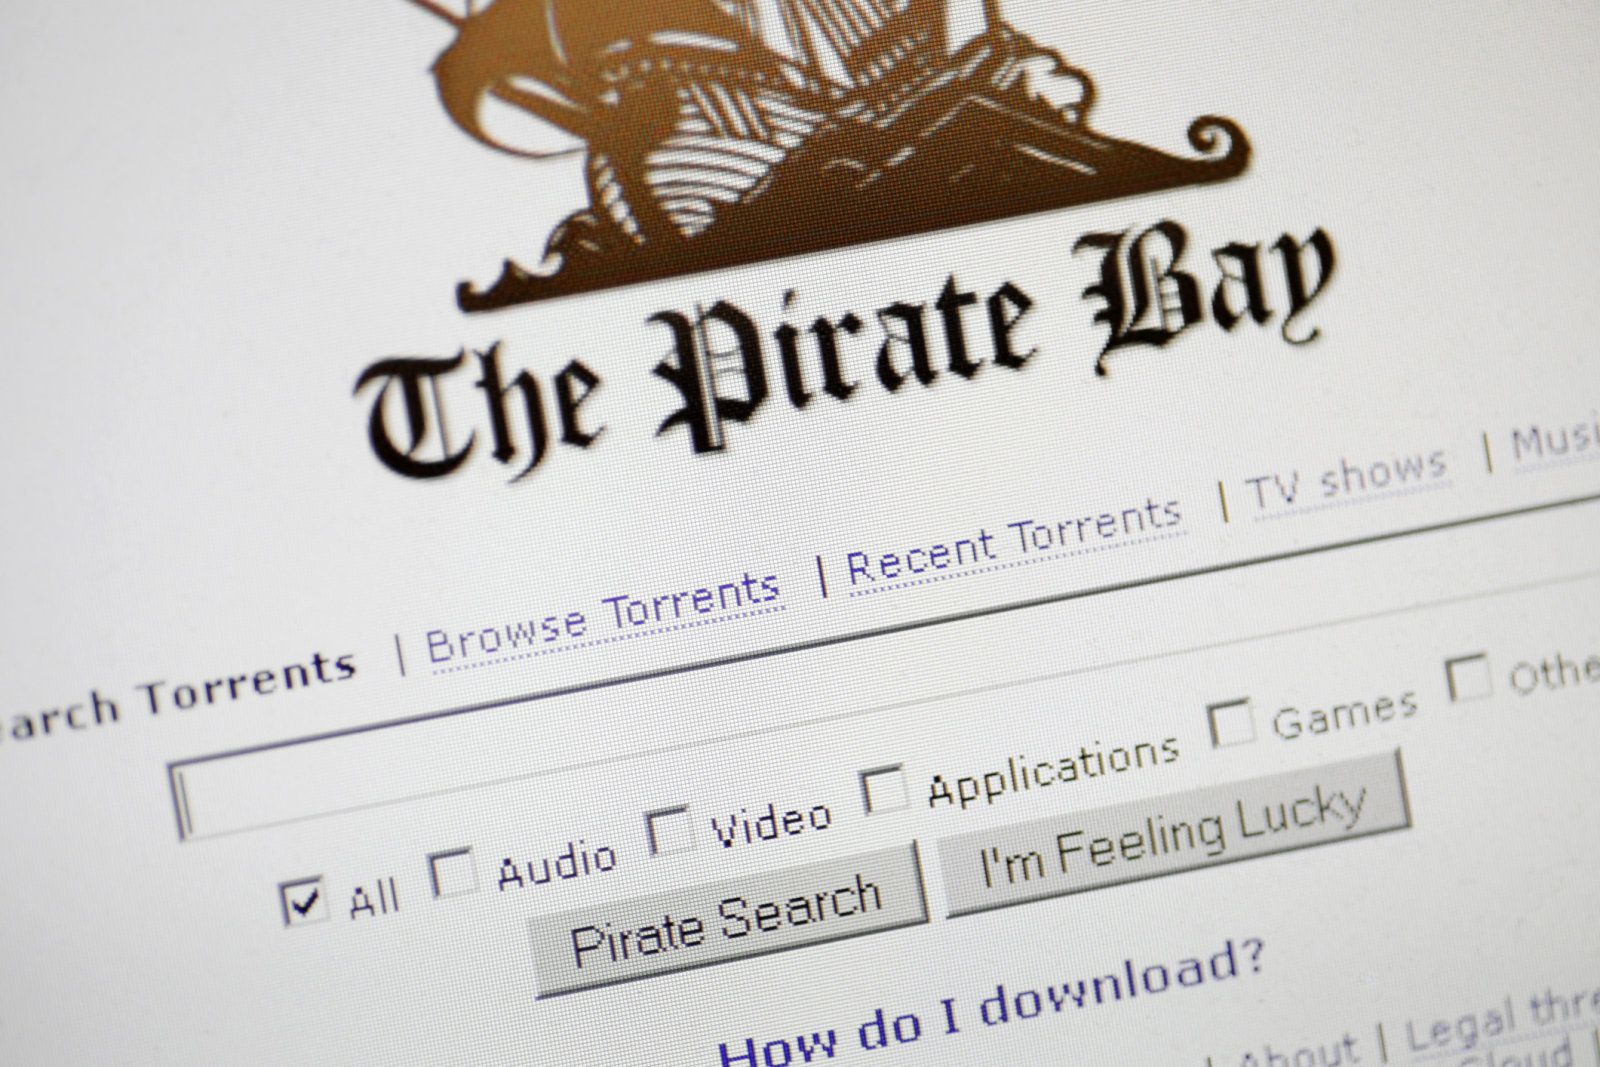 Europe's top court rules that ISPs should block The Pirate